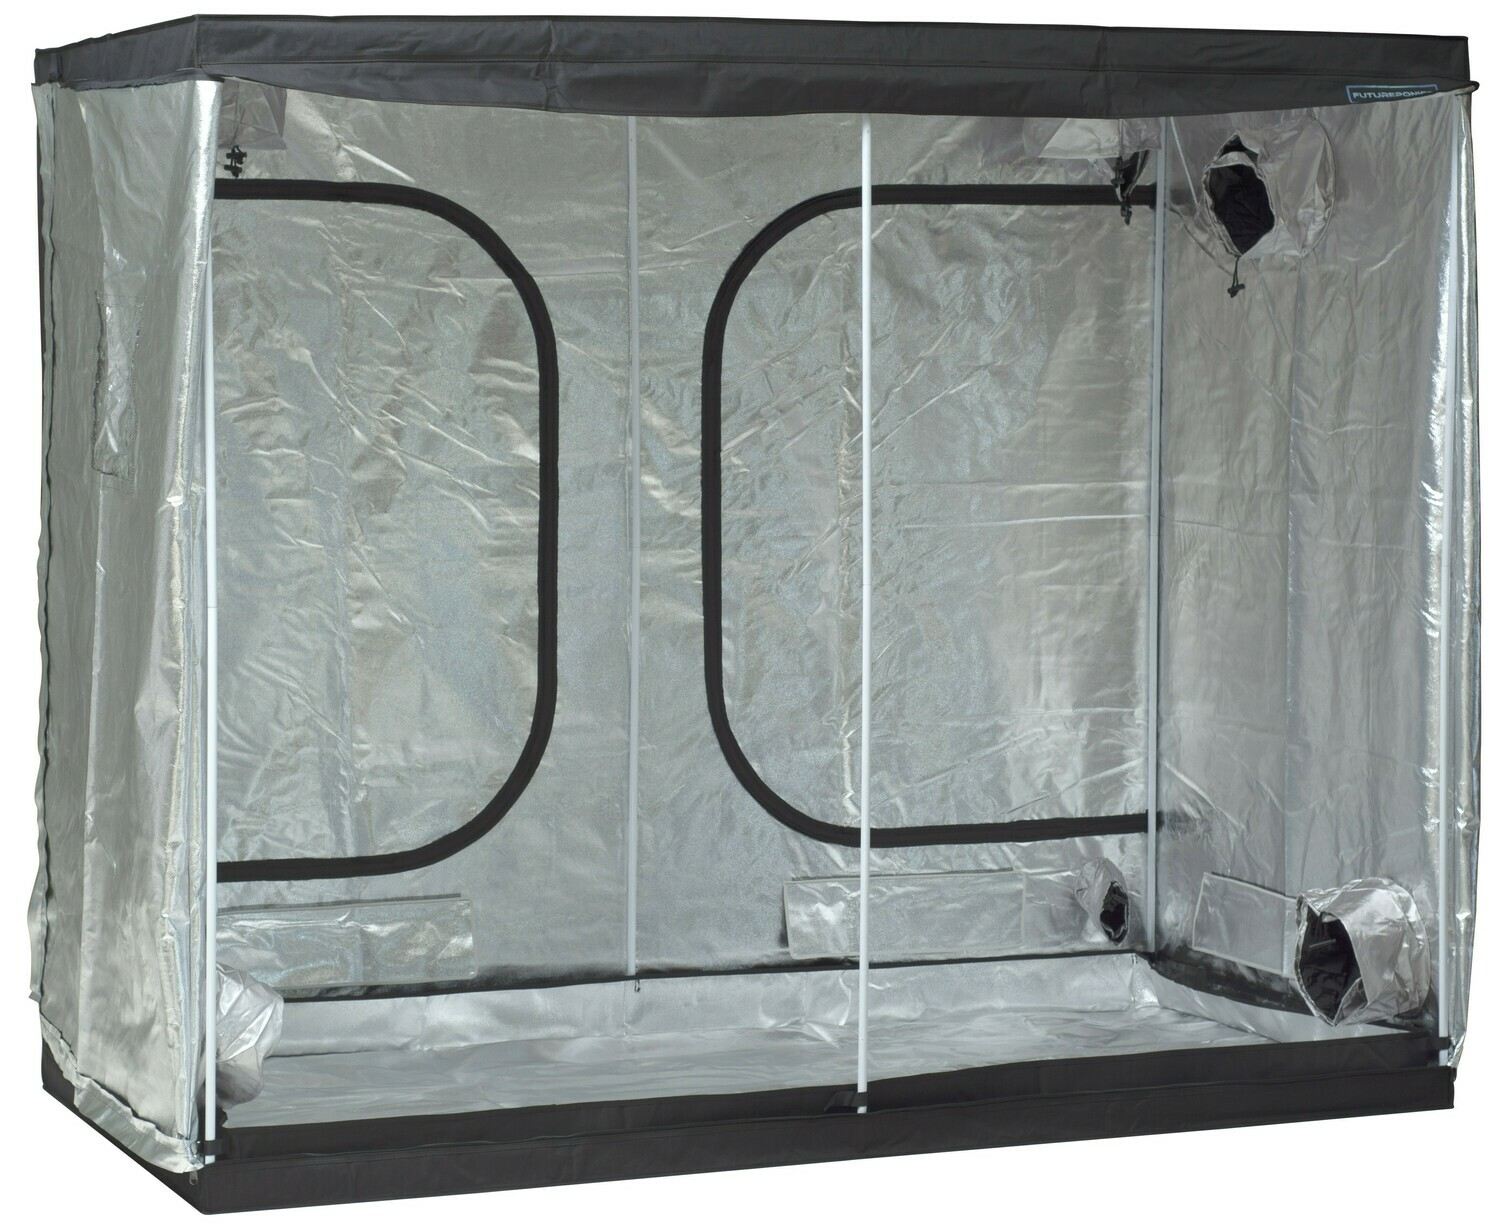 Series 3 Grow Tent - 240 x 240 x 220 cm